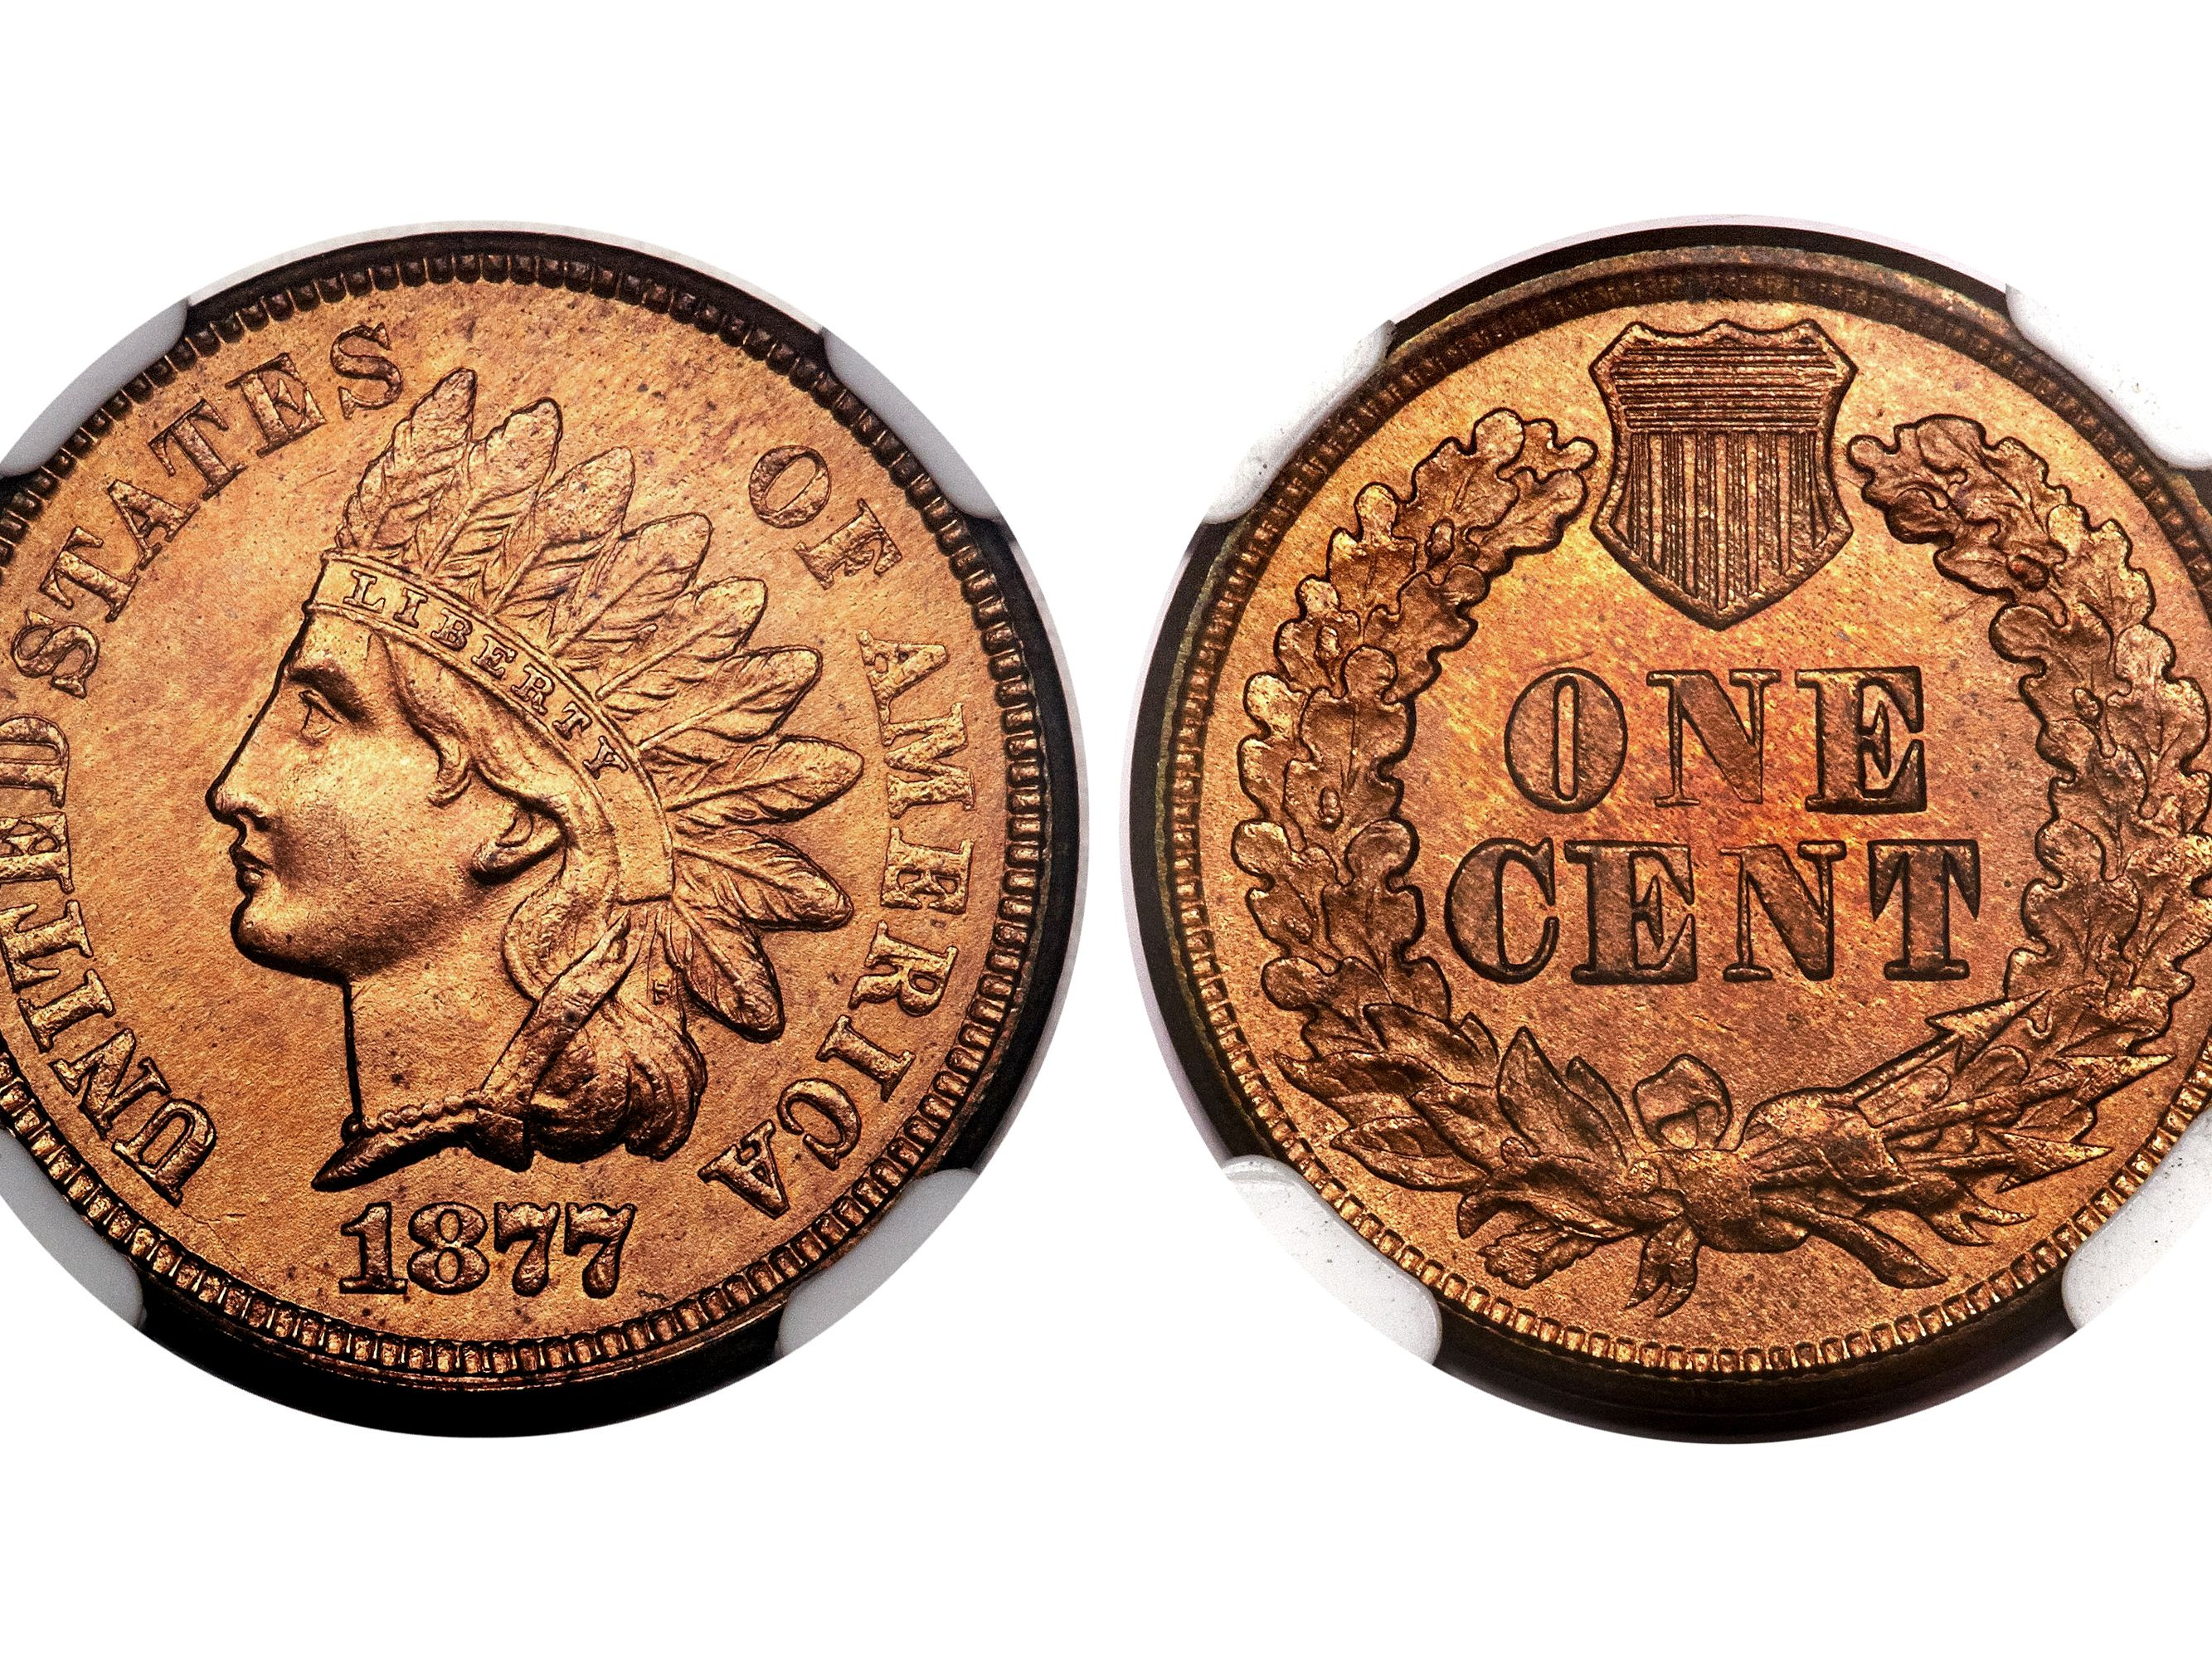 How much is a 1863 indian head penny worth